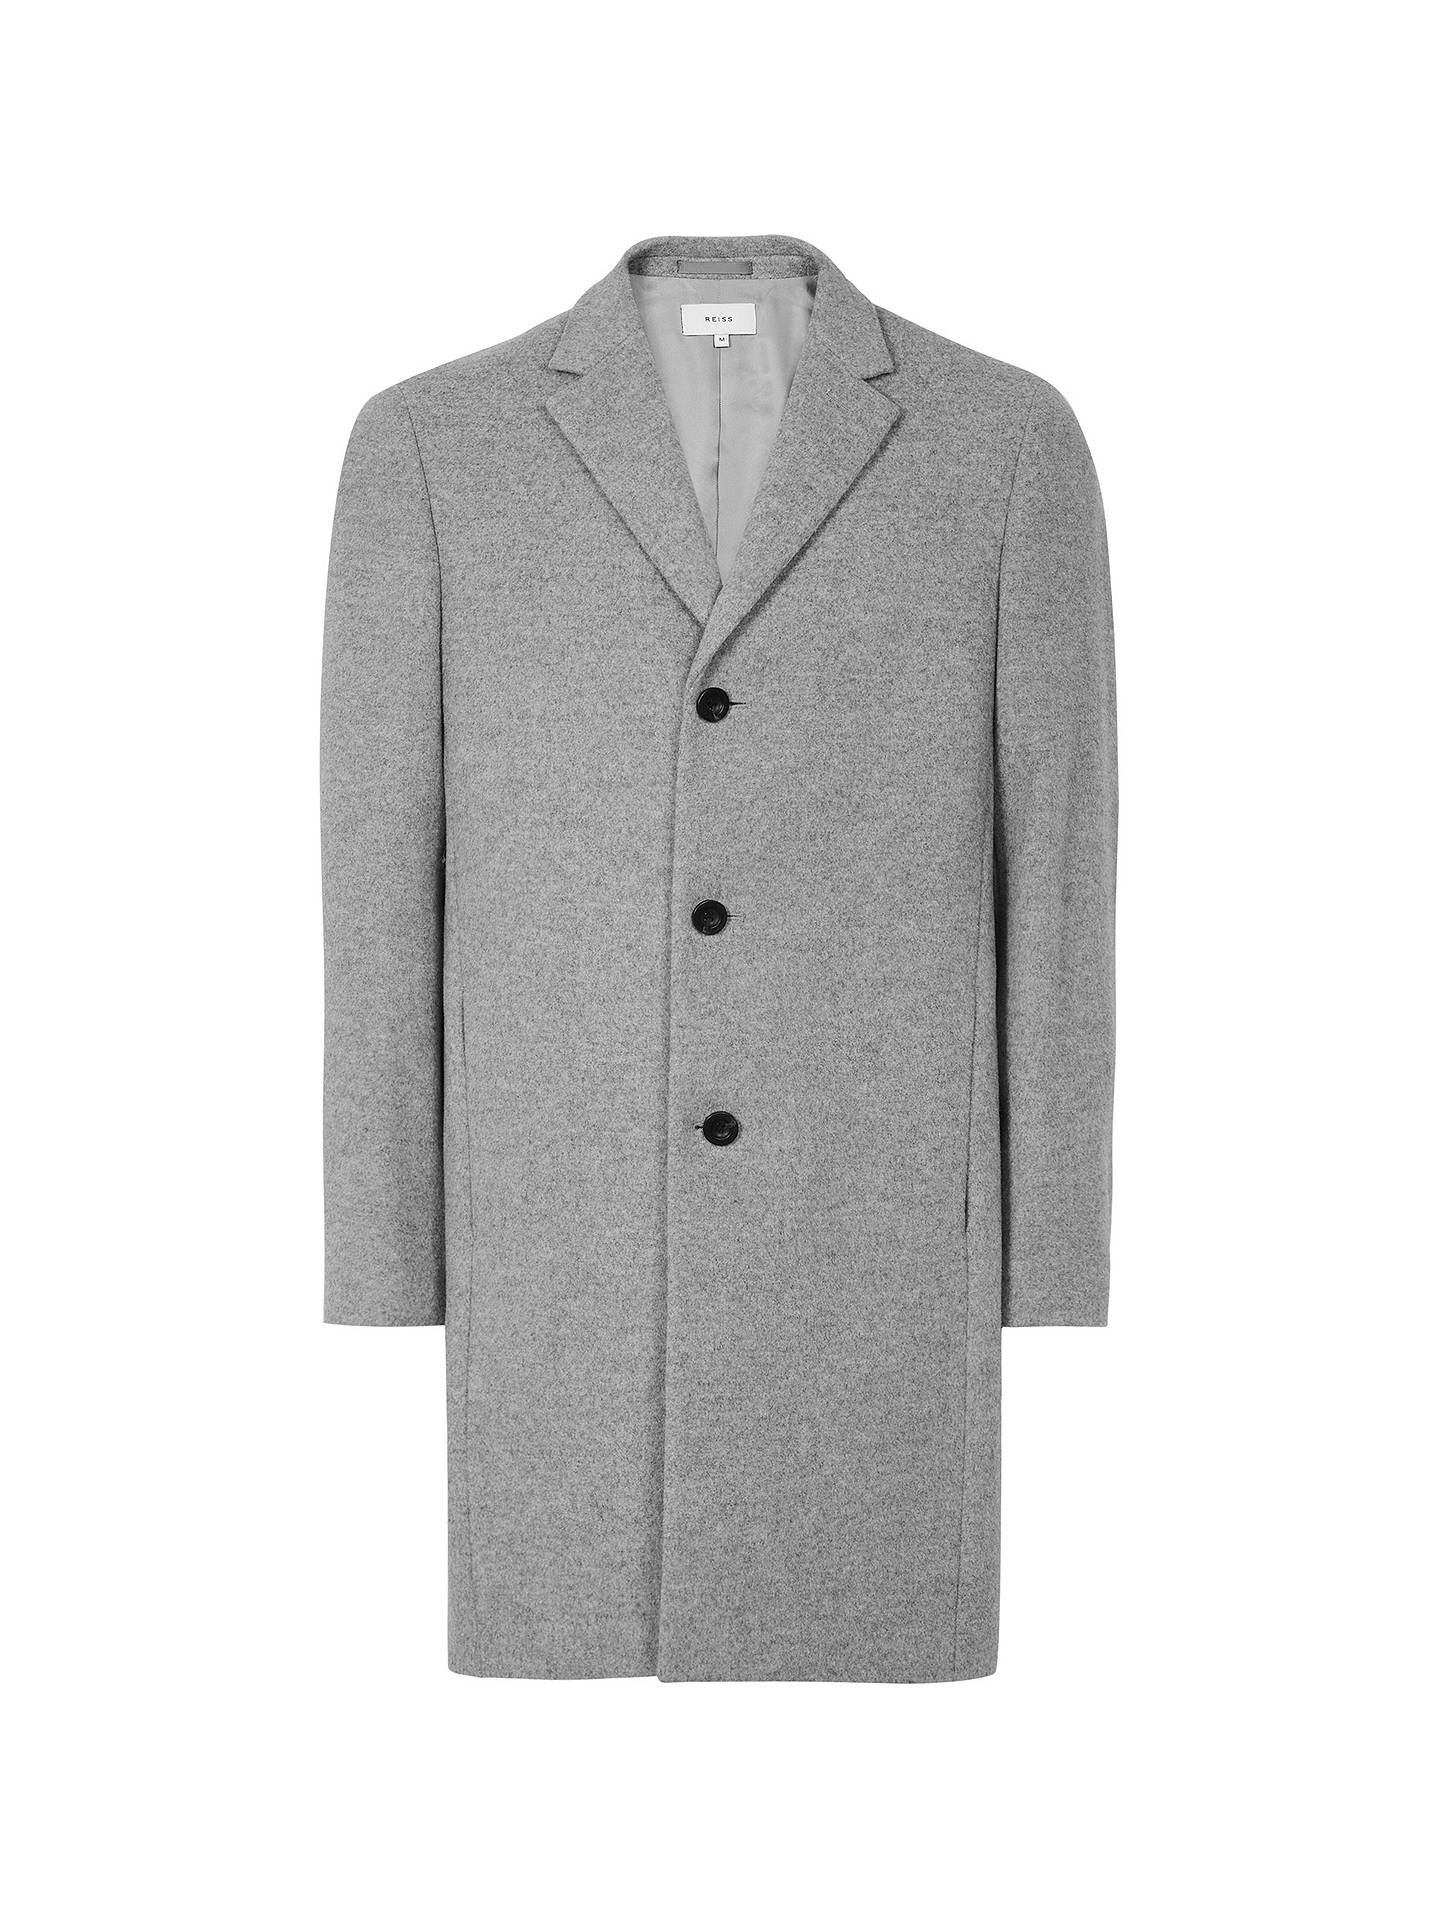 Buy Reiss Gable Wool Epsom Coat, Soft Grey, S Online at johnlewis.com